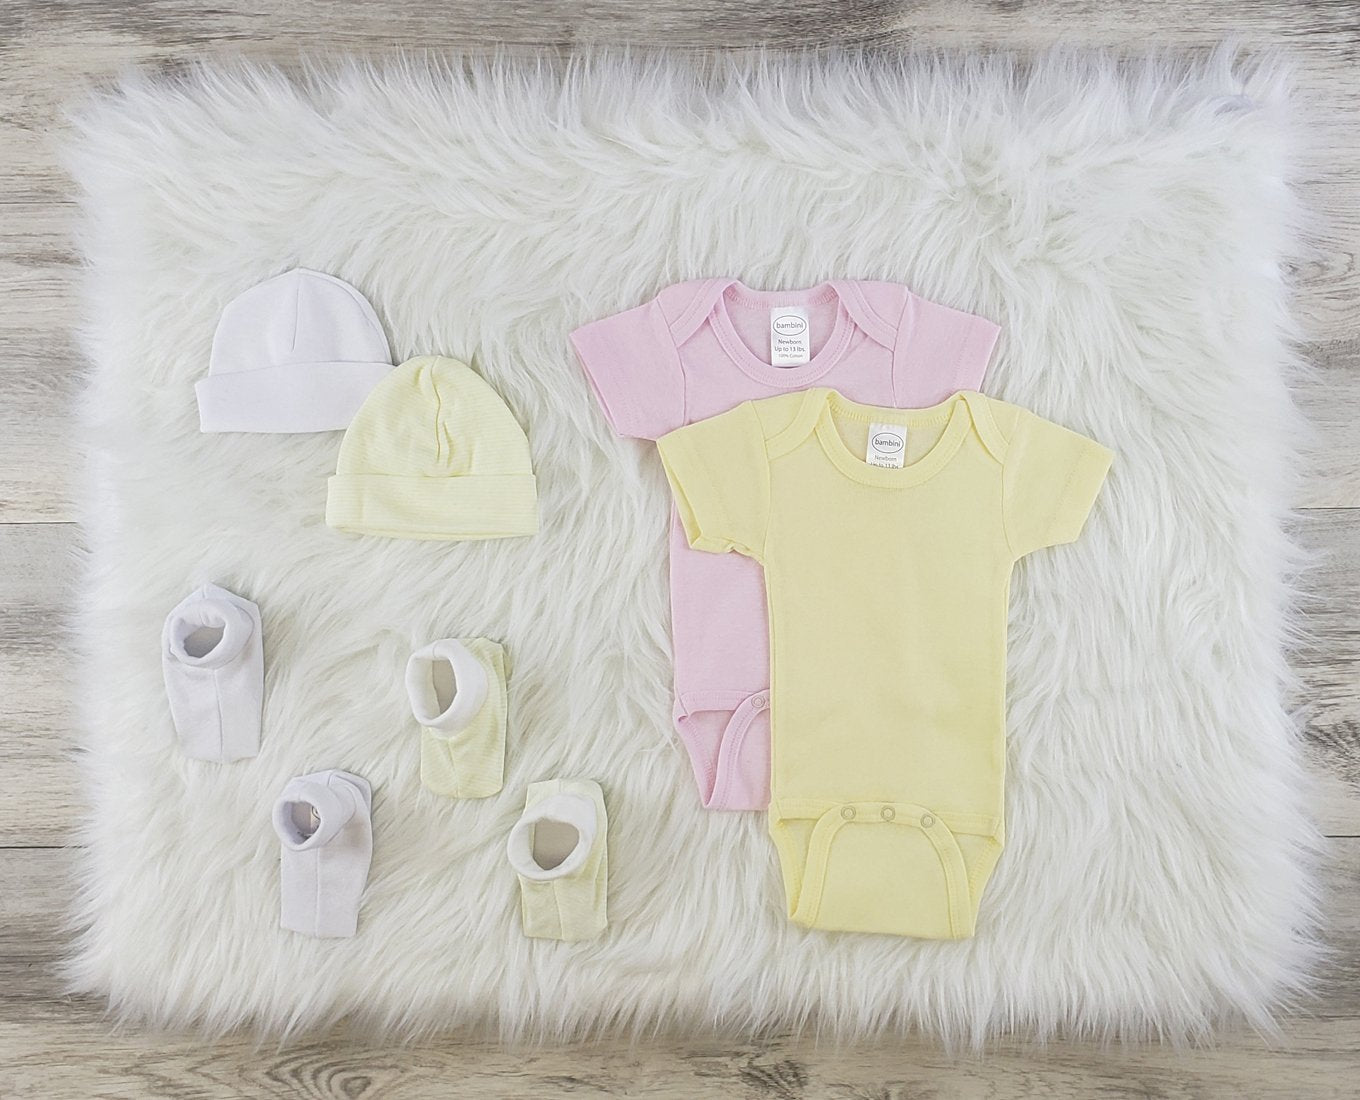 Bambini 6 Pc Layette Baby Clothes Set - Baby World Inc